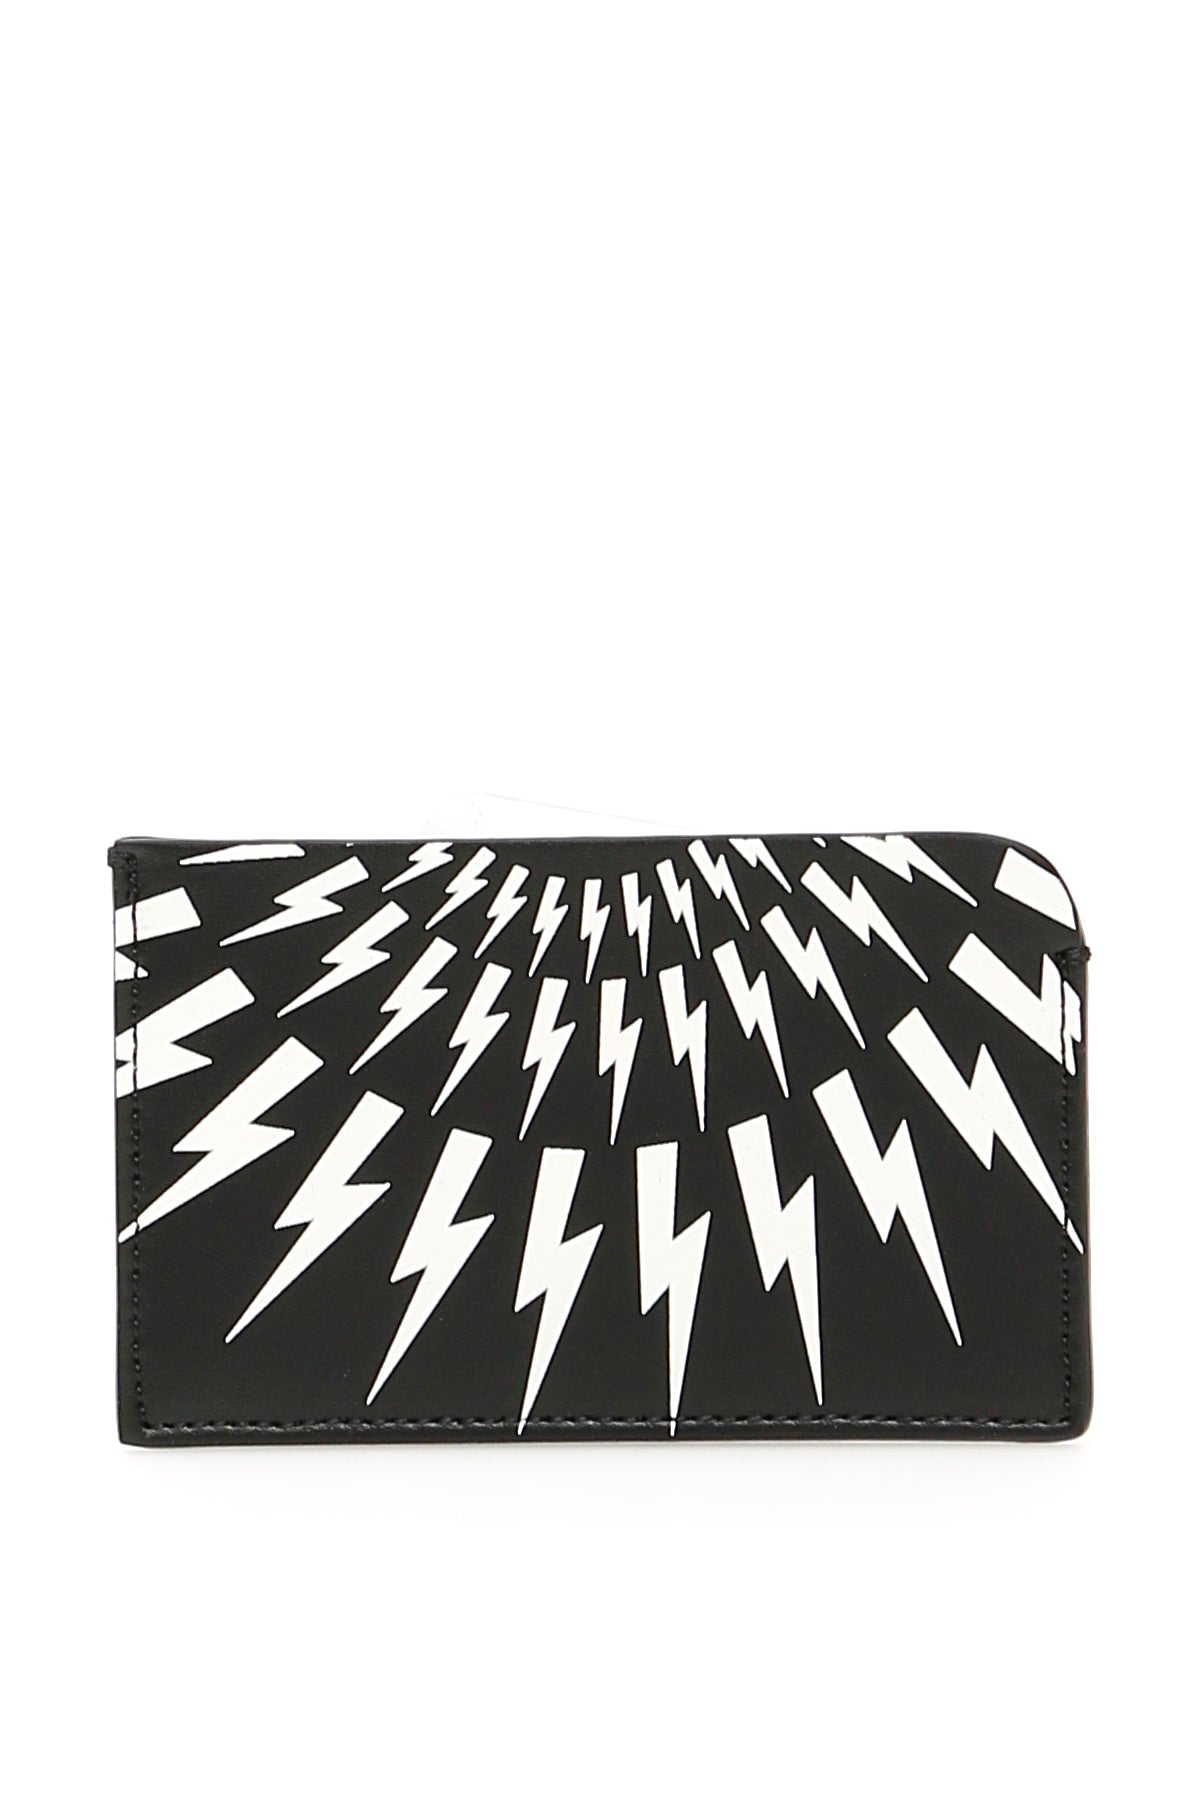 Neil Barrett Accessories NEIL BARRETT LIGHTENING BOLT PRINT CARDHOLDER